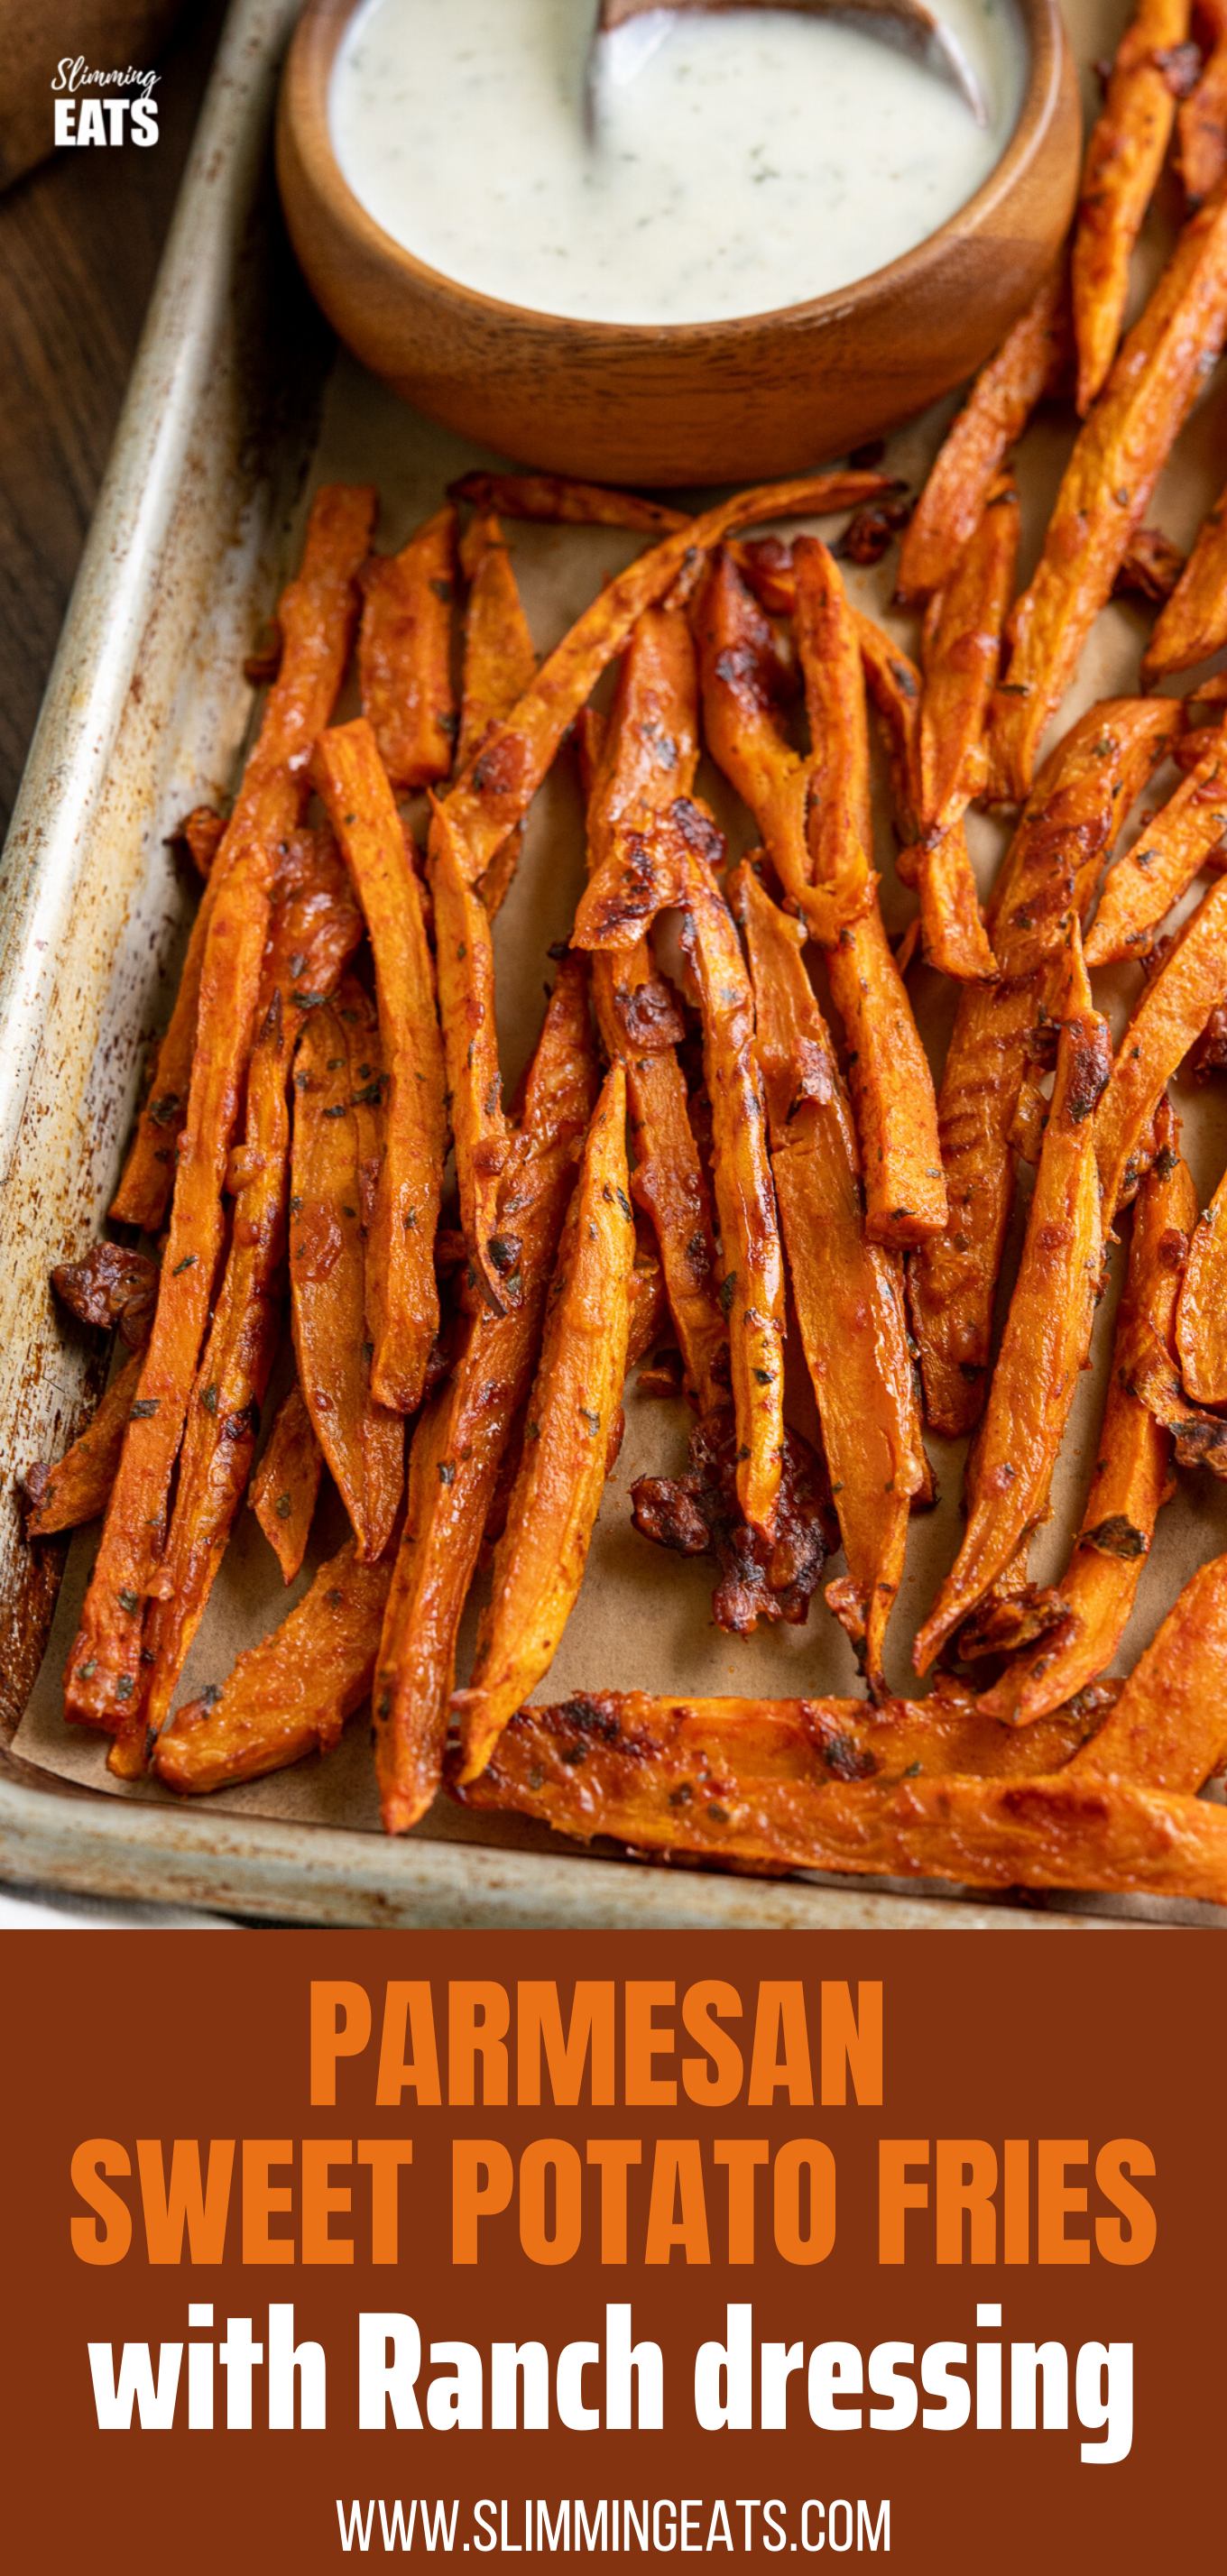 Parmesan Sweet Potato fries on baking tray with wooden bowl of ranch dressing featured pin